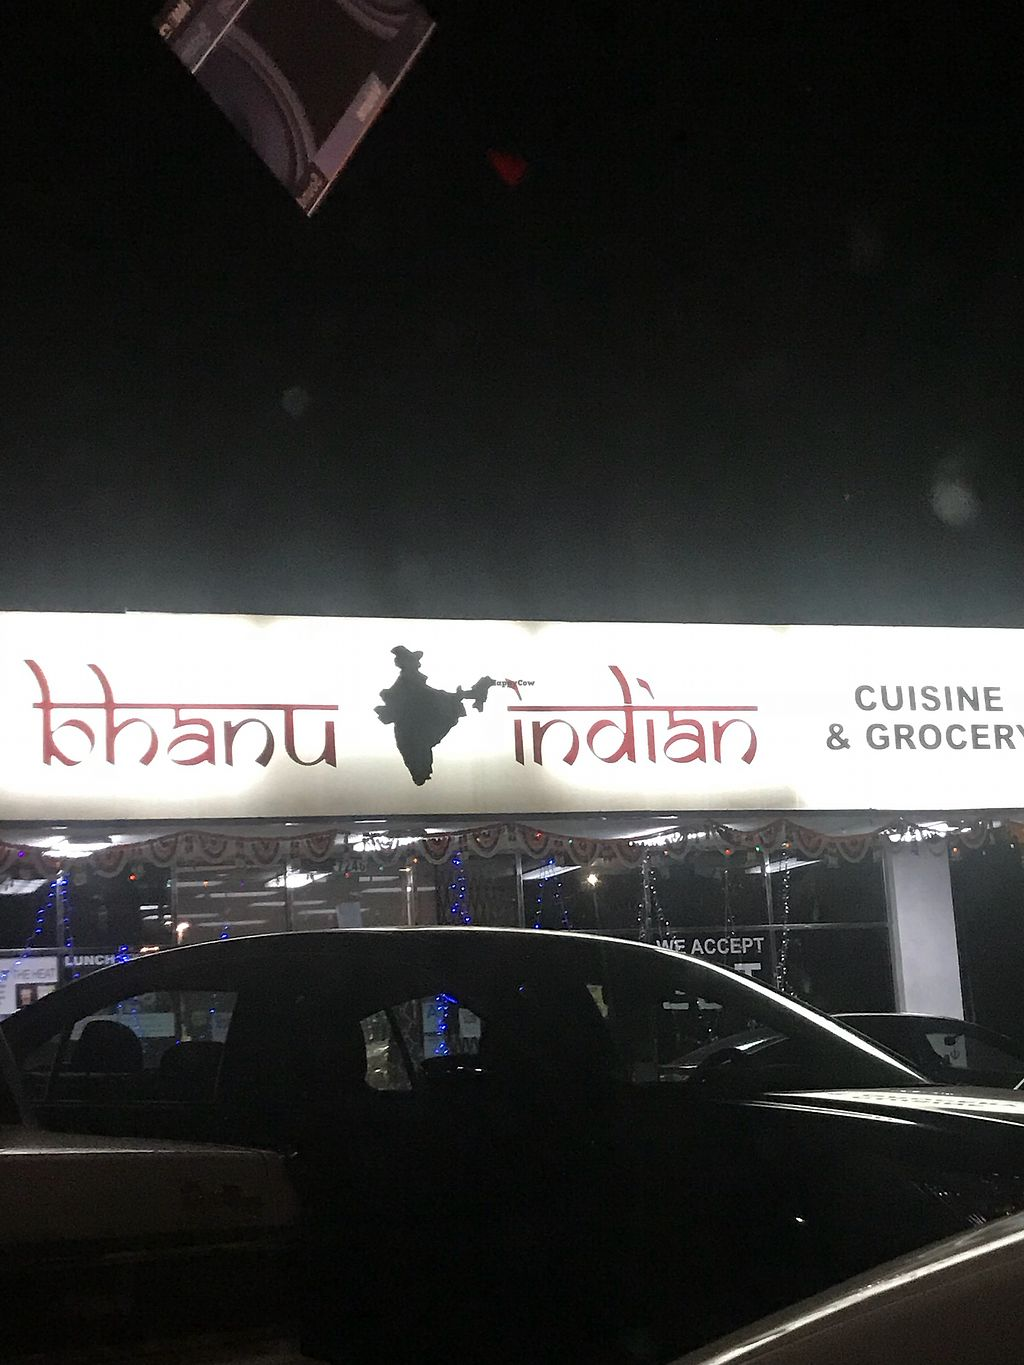 "Photo of Bhanu's Indian Grocery and Cuisine  by <a href=""/members/profile/Vegan_Ness"">Vegan_Ness</a> <br/>Outside of Bhanu restaurant  <br/> January 2, 2018  - <a href='/contact/abuse/image/39050/342265'>Report</a>"